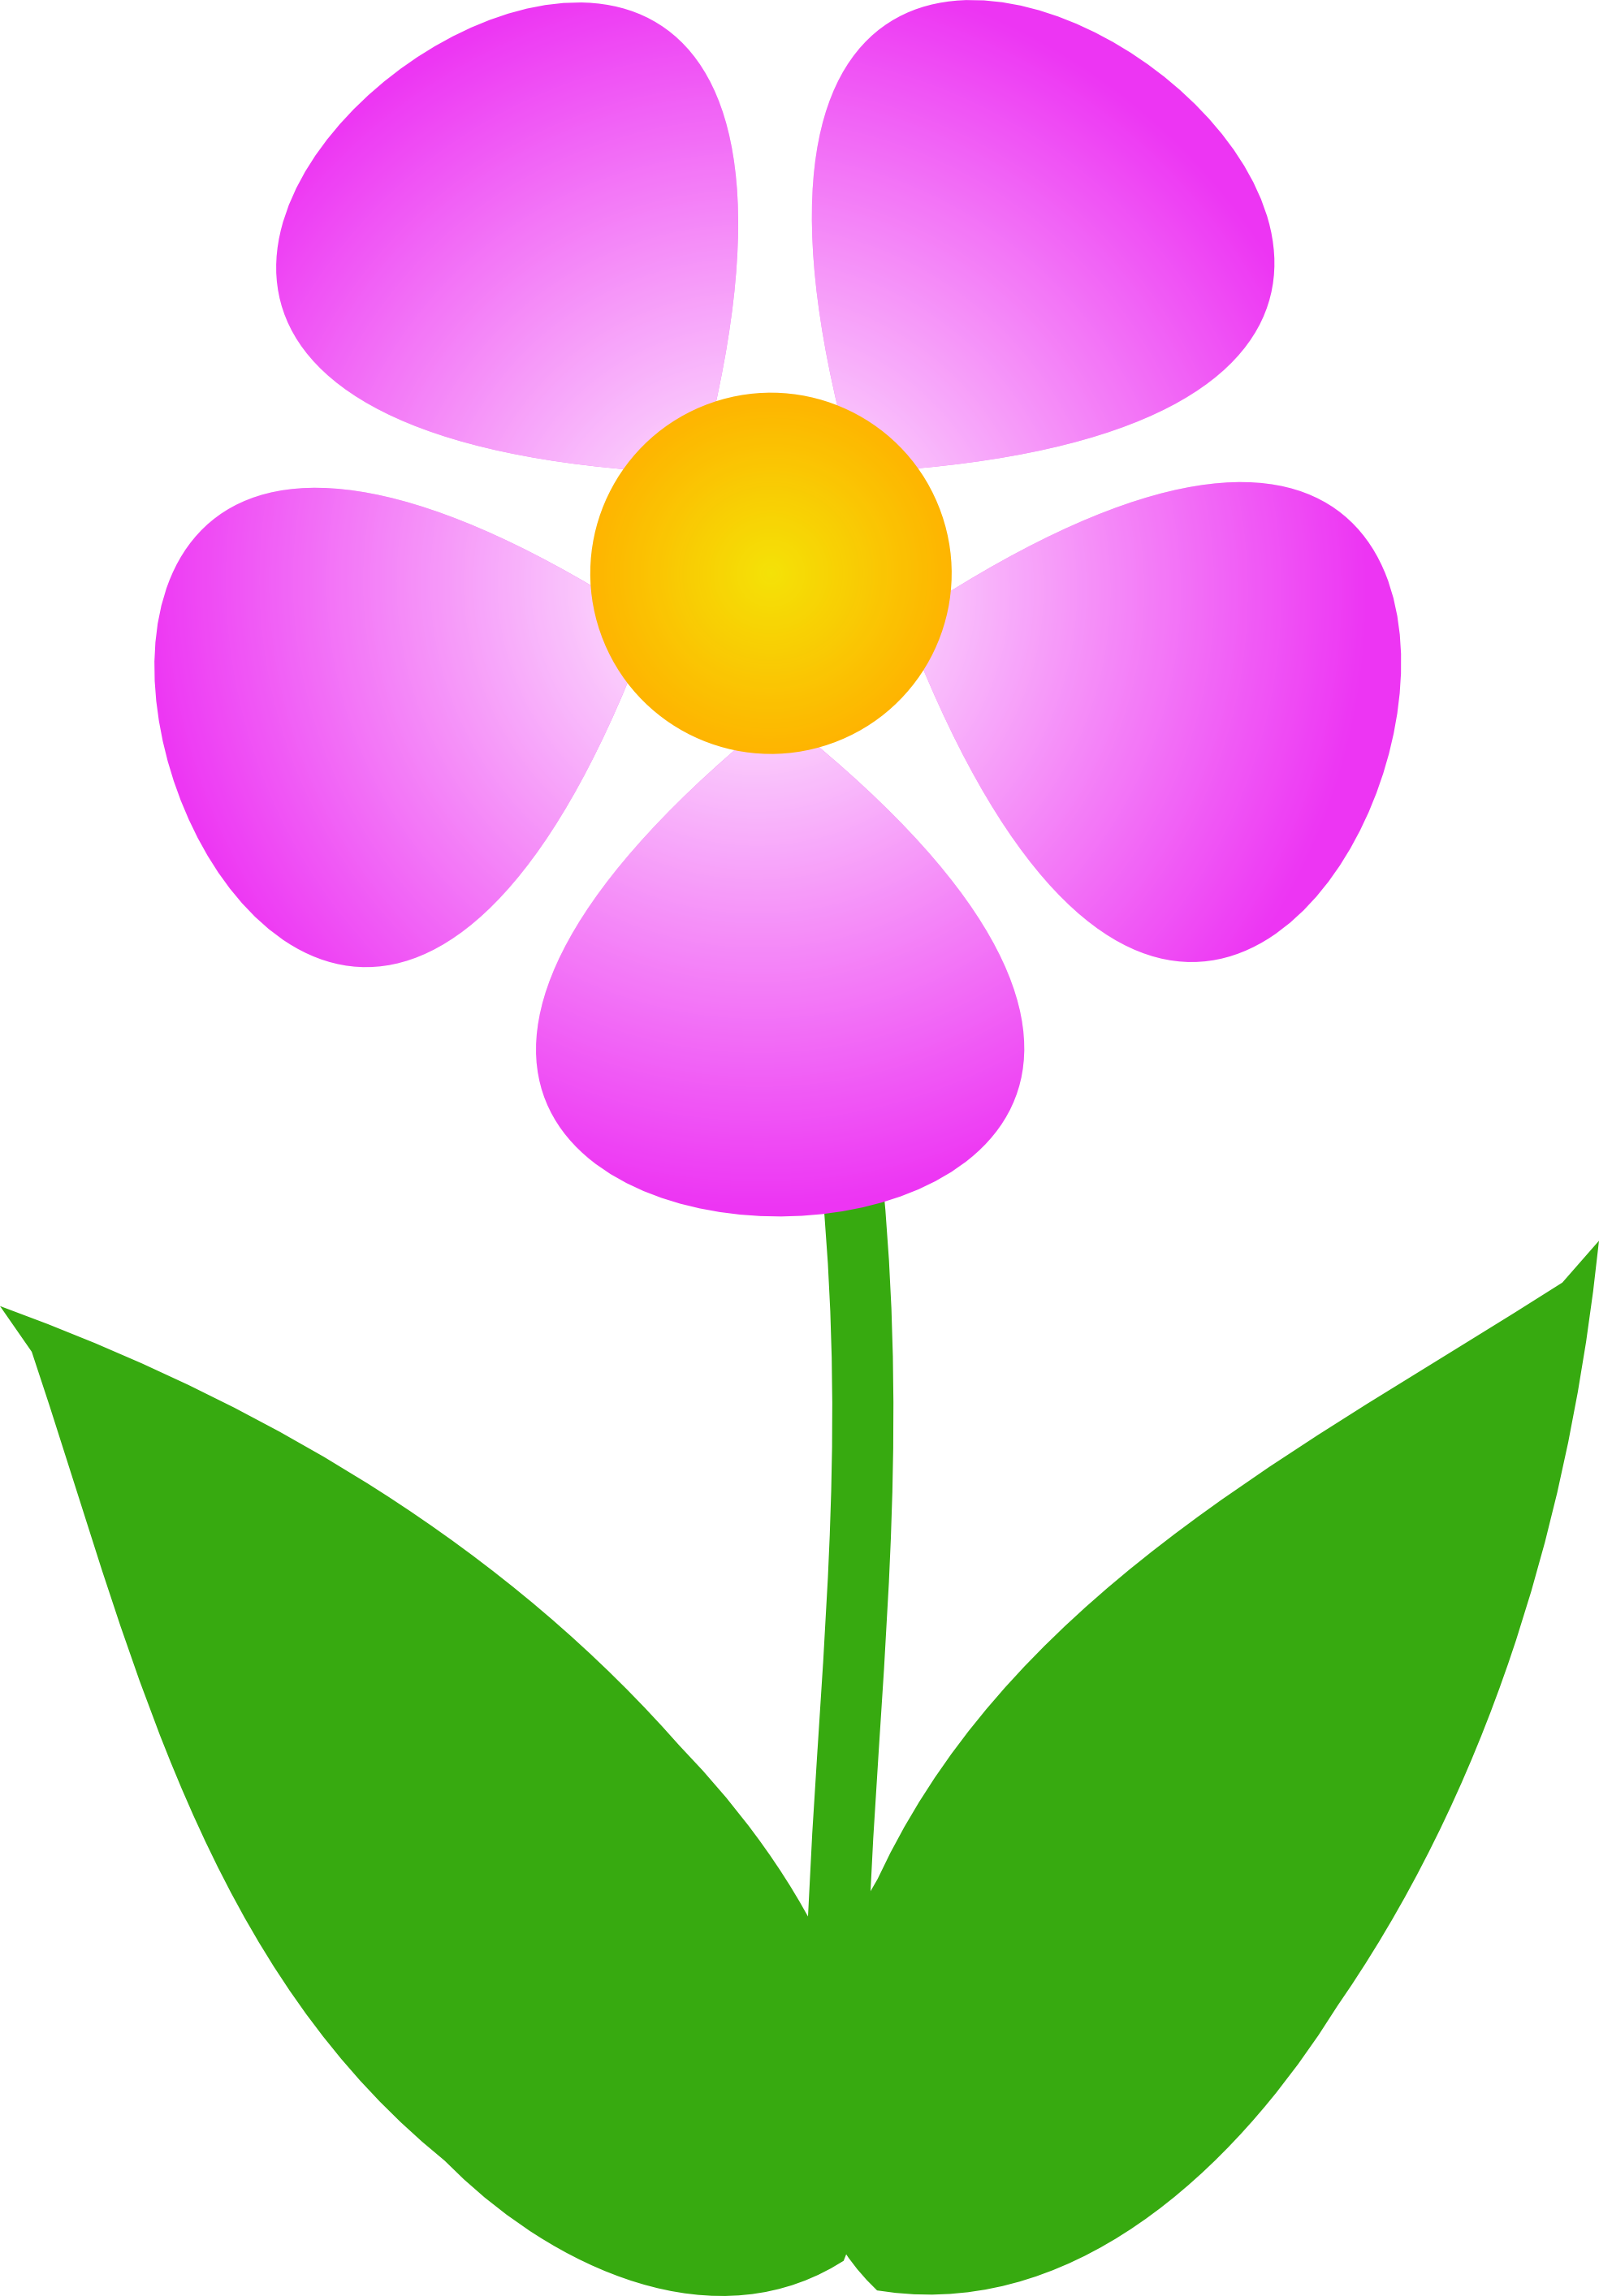 Free clipart images of flowers flower clip art pictures image 1